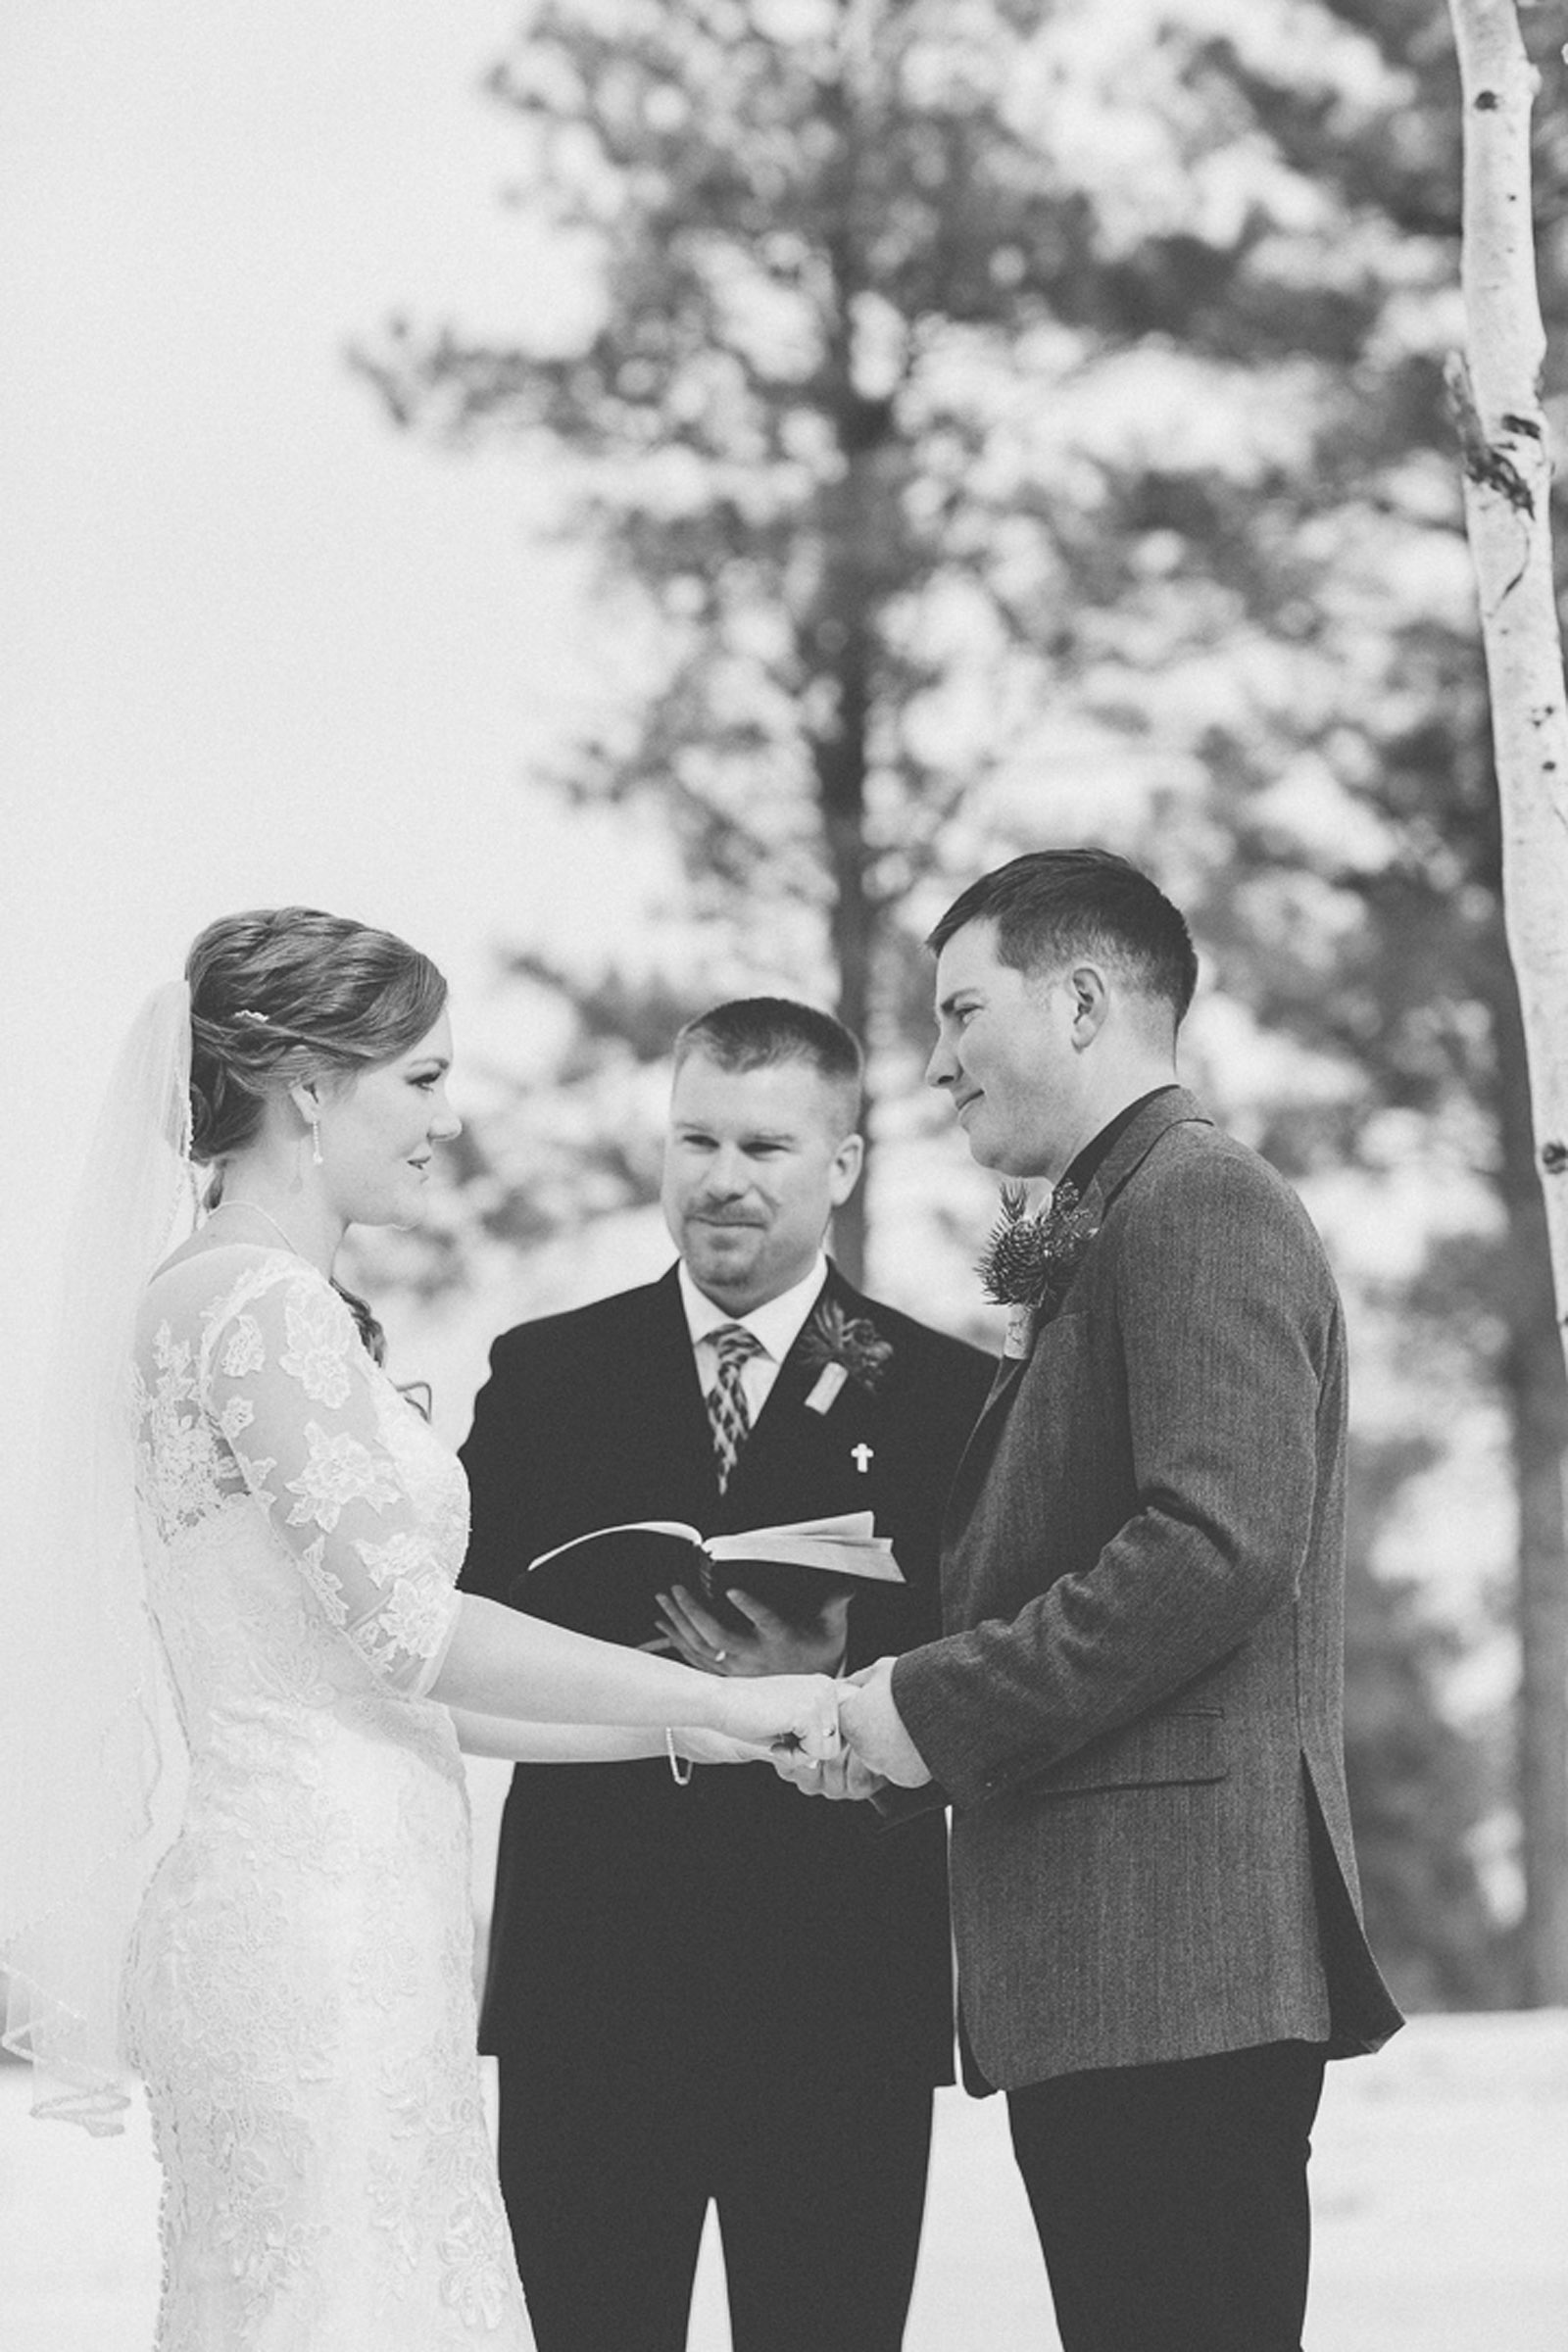 117-wedding-ceremony-in-pagosa-springs-wedding-photographer-snow-winter-wedding